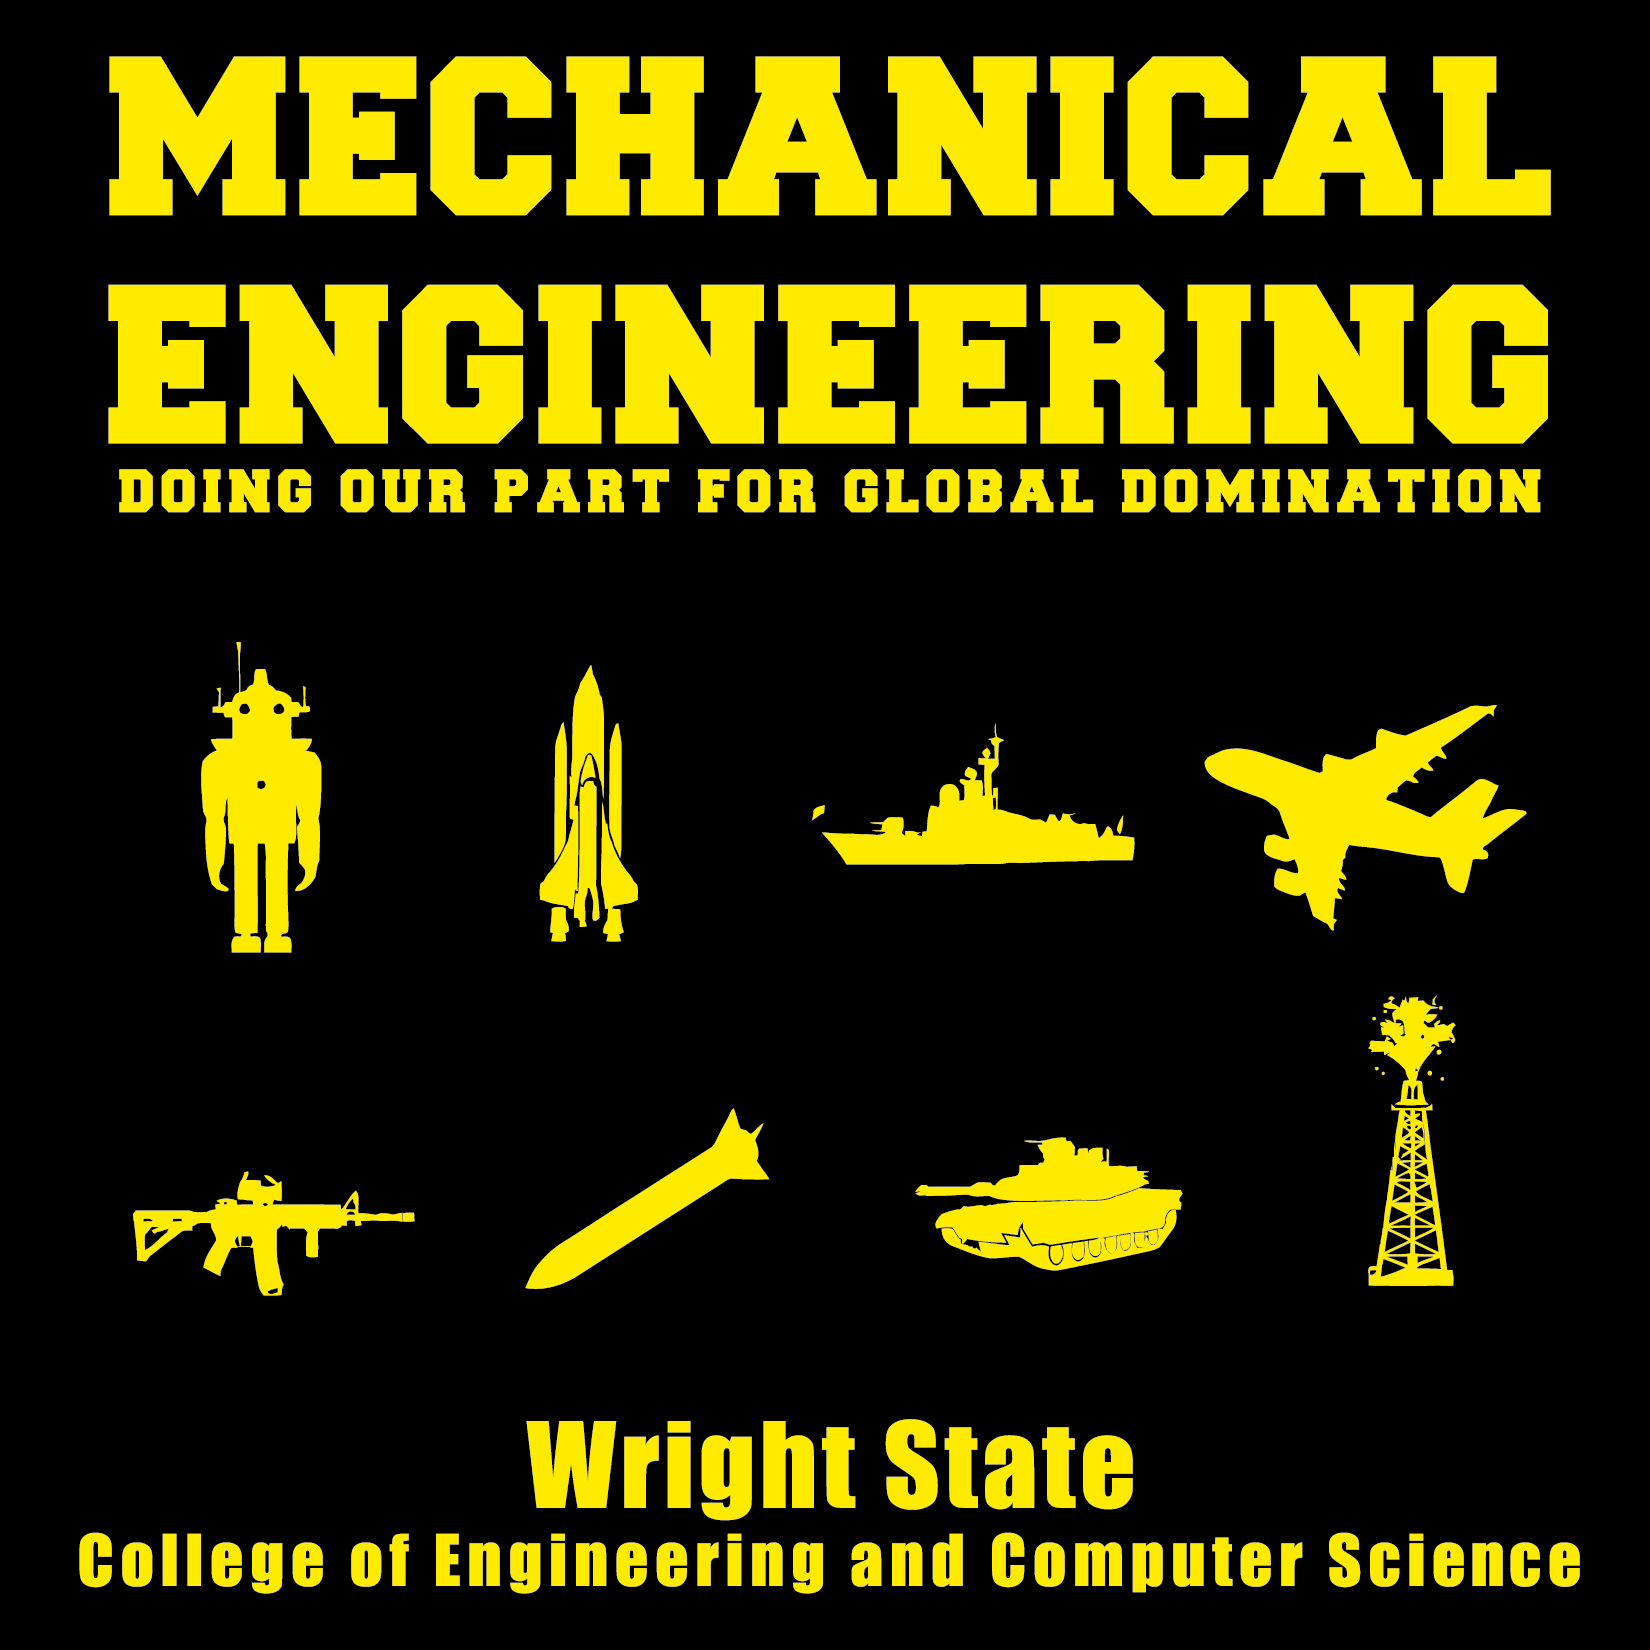 mechanical engineering wallpaper wallpapersafari